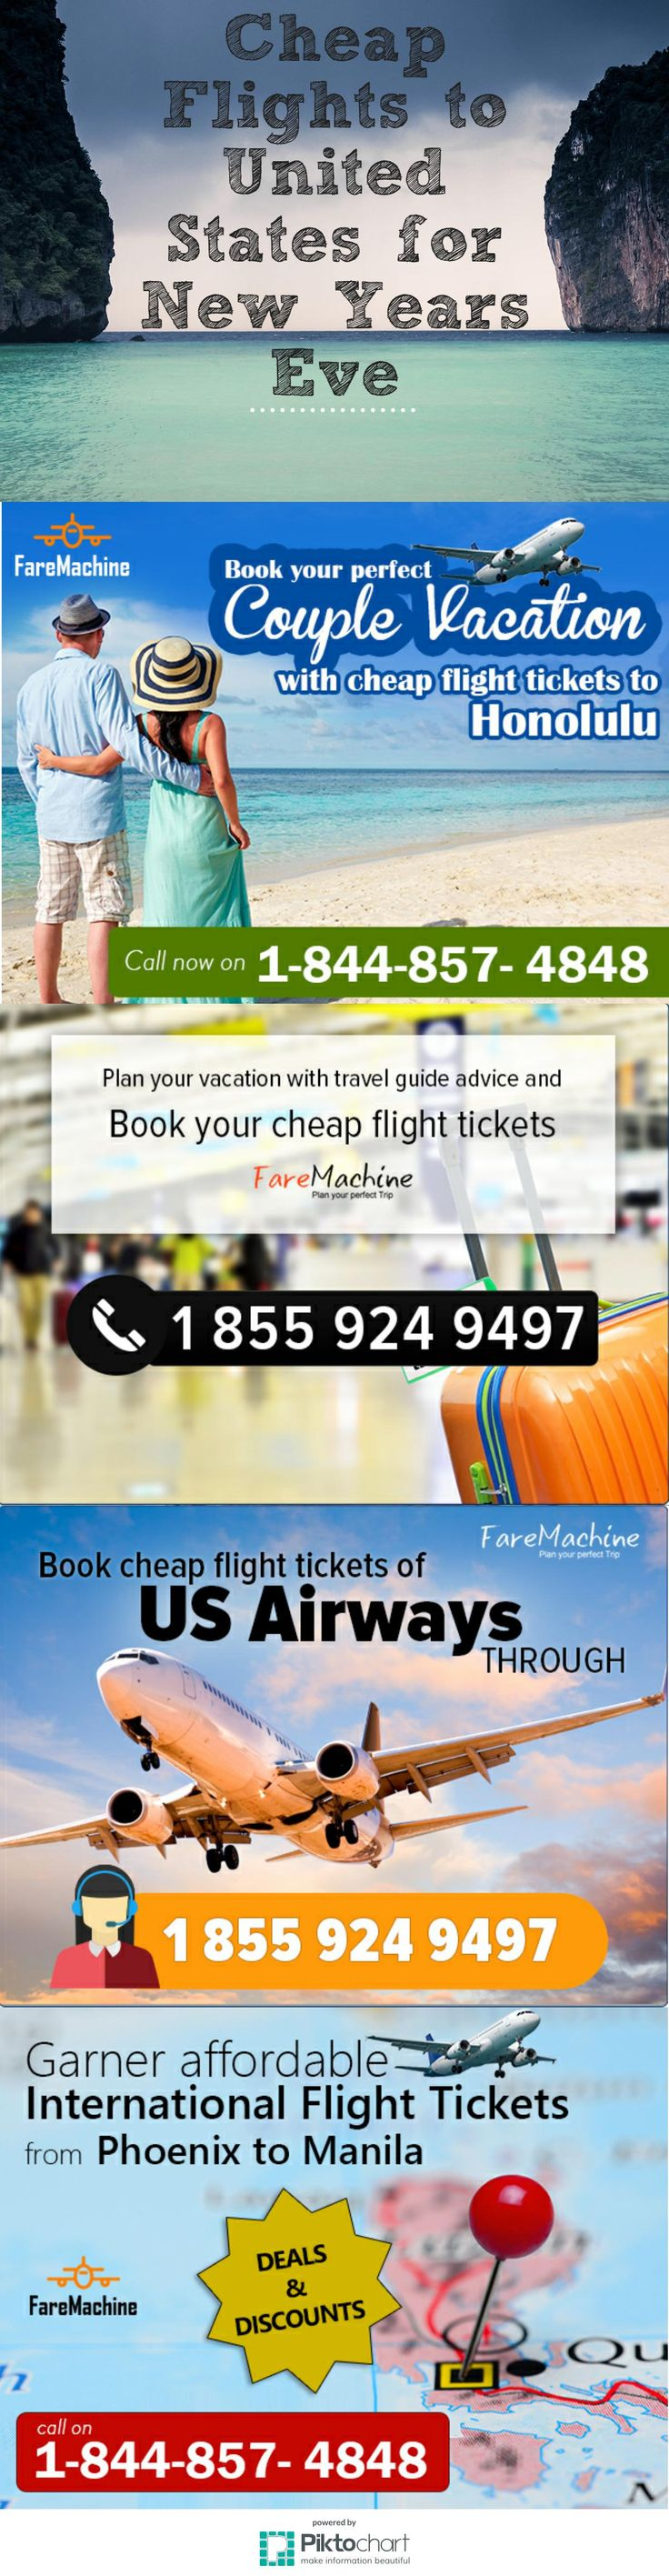 Find flights #plane_tickets,Last minute flight deals, Luxury Hotels.Find The Best Prices For Hotels, Flights, Car Rentals & Tours. Save up to 80% on all #Flights_Tickets Booking booking call 1855 924 9497.